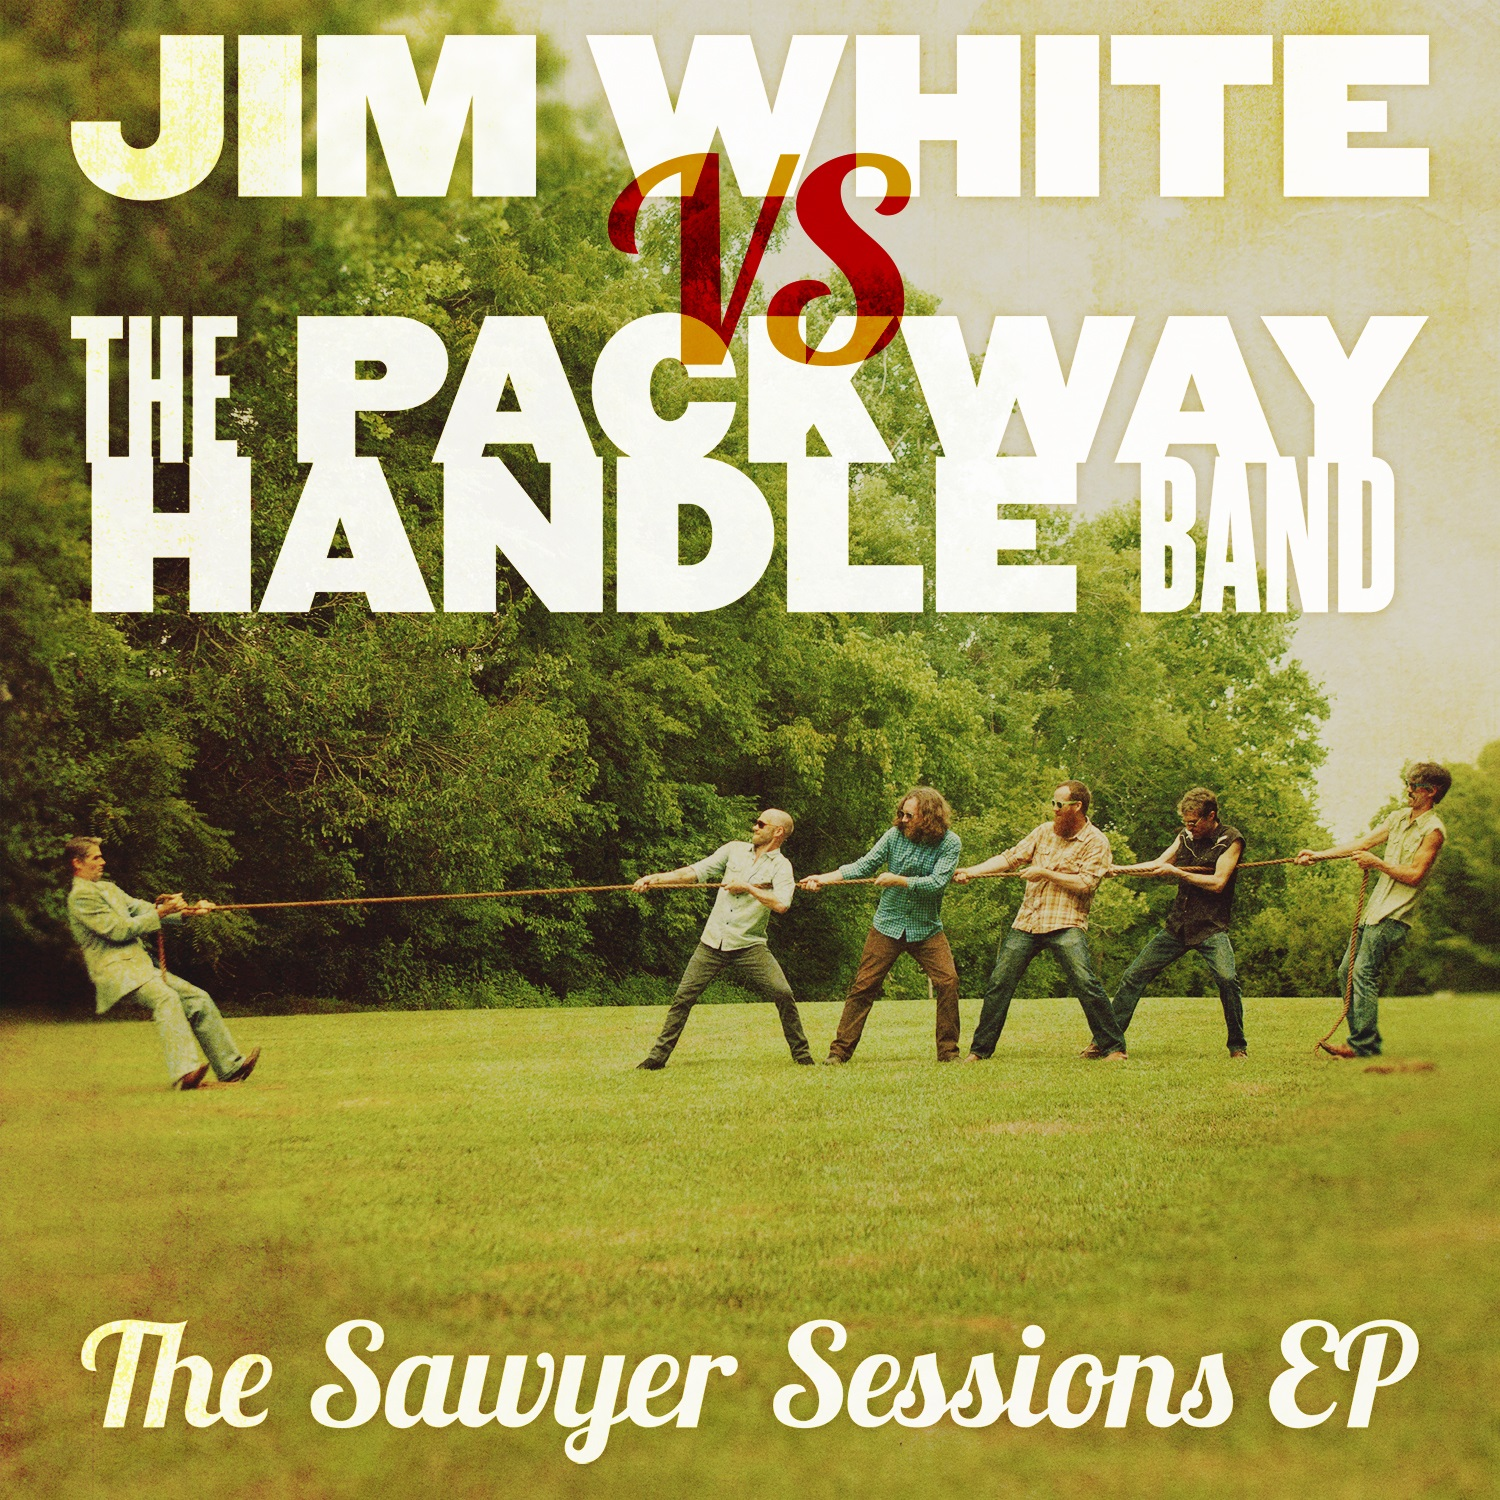 Jim White and Packway Handle Band